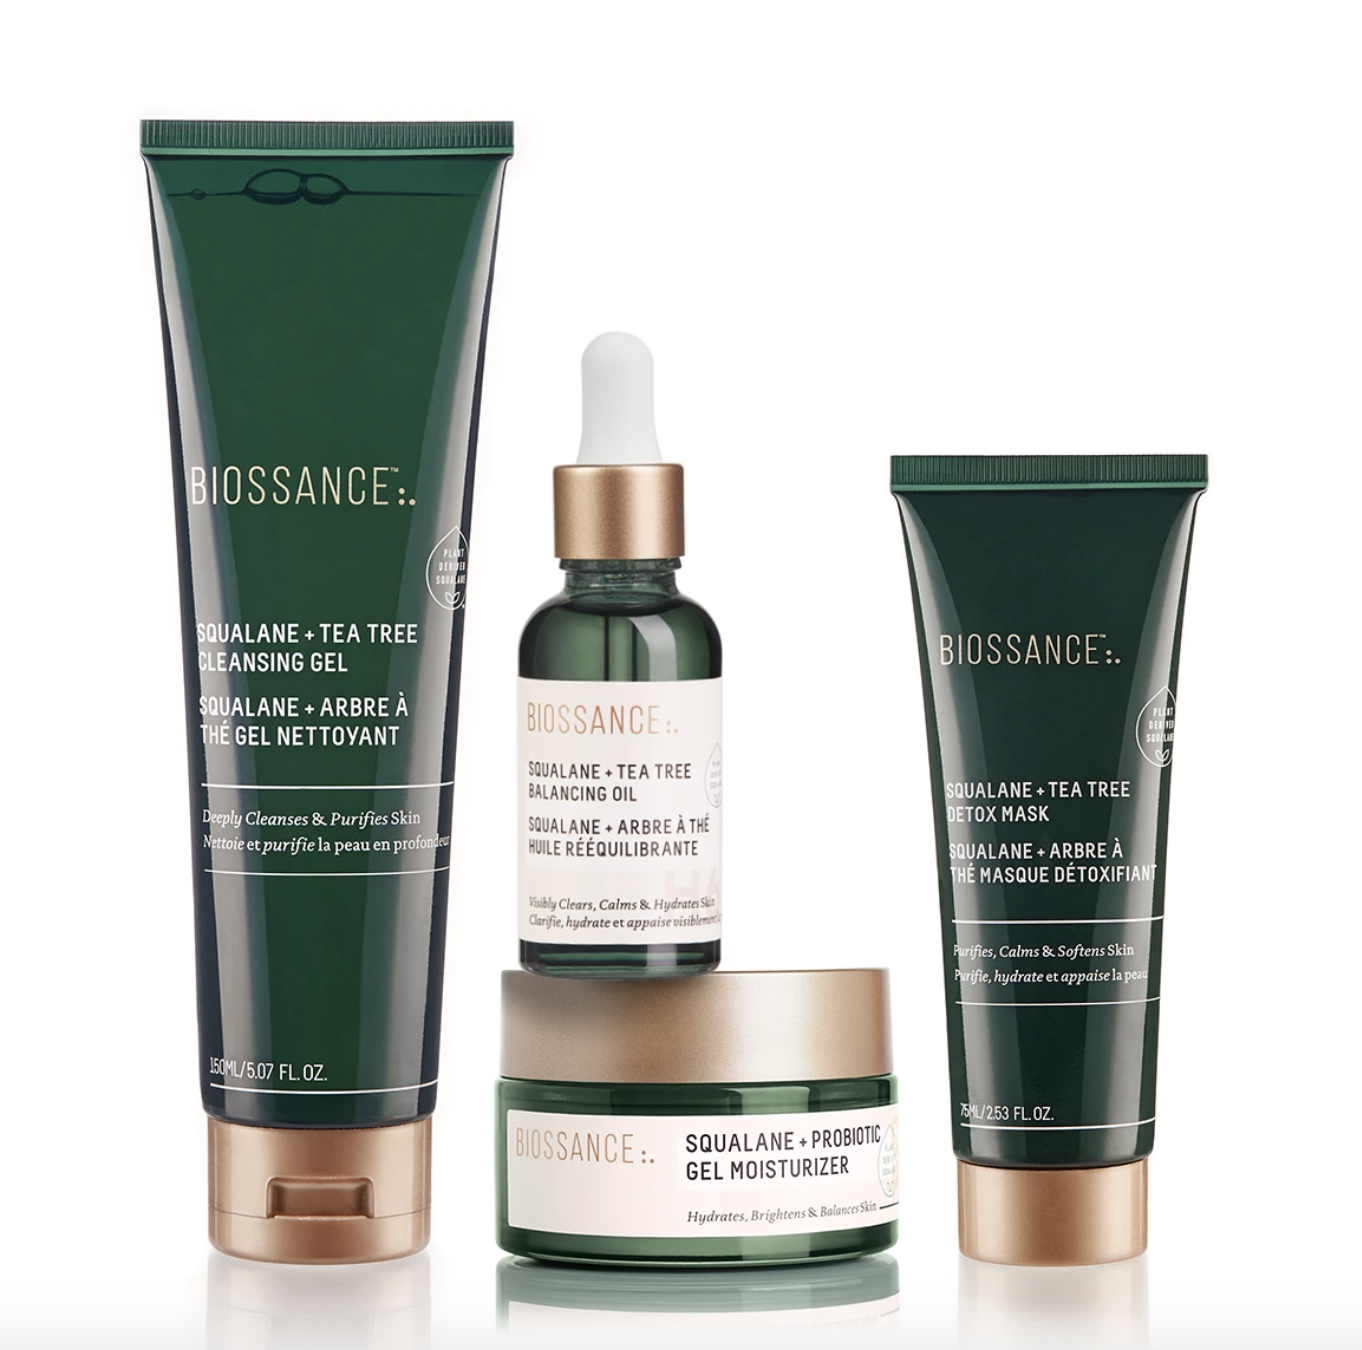 A kit with cleansing gel, balancing oil, moisturizer and a mask